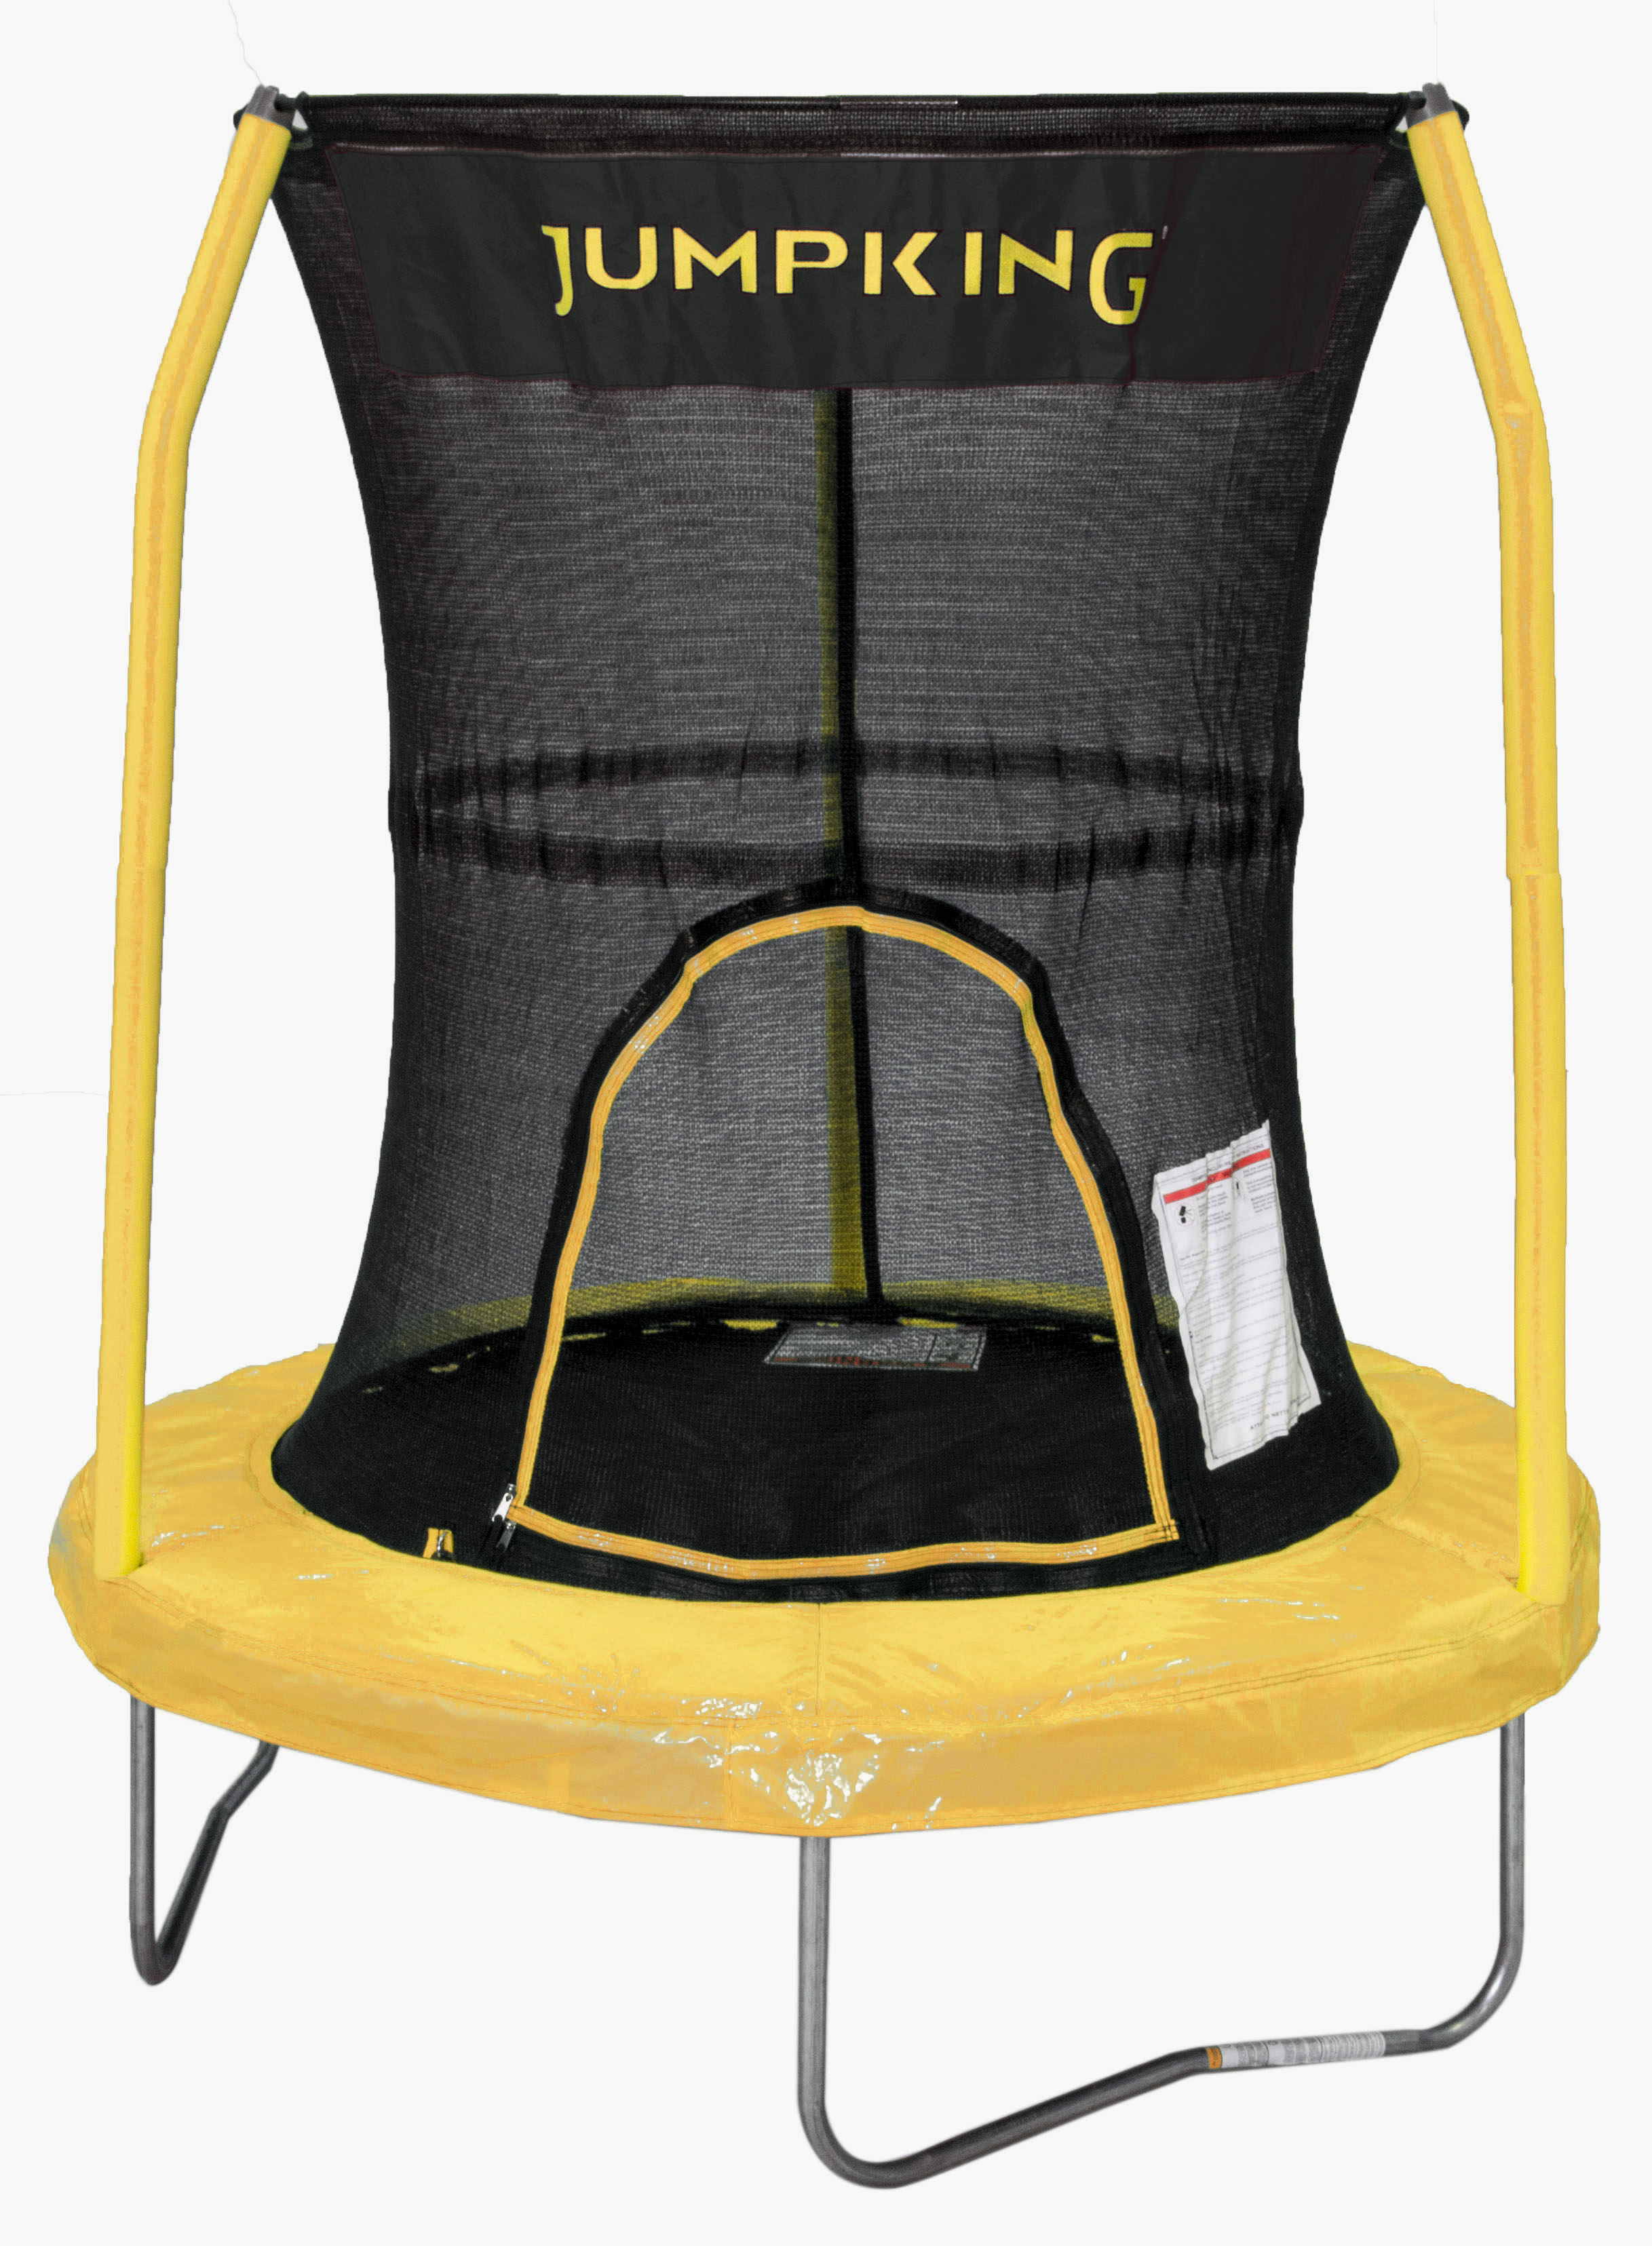 Bazoongi BZJP55Y 55 in. Trampoline with 3 Poles Enclosure System, Yellow